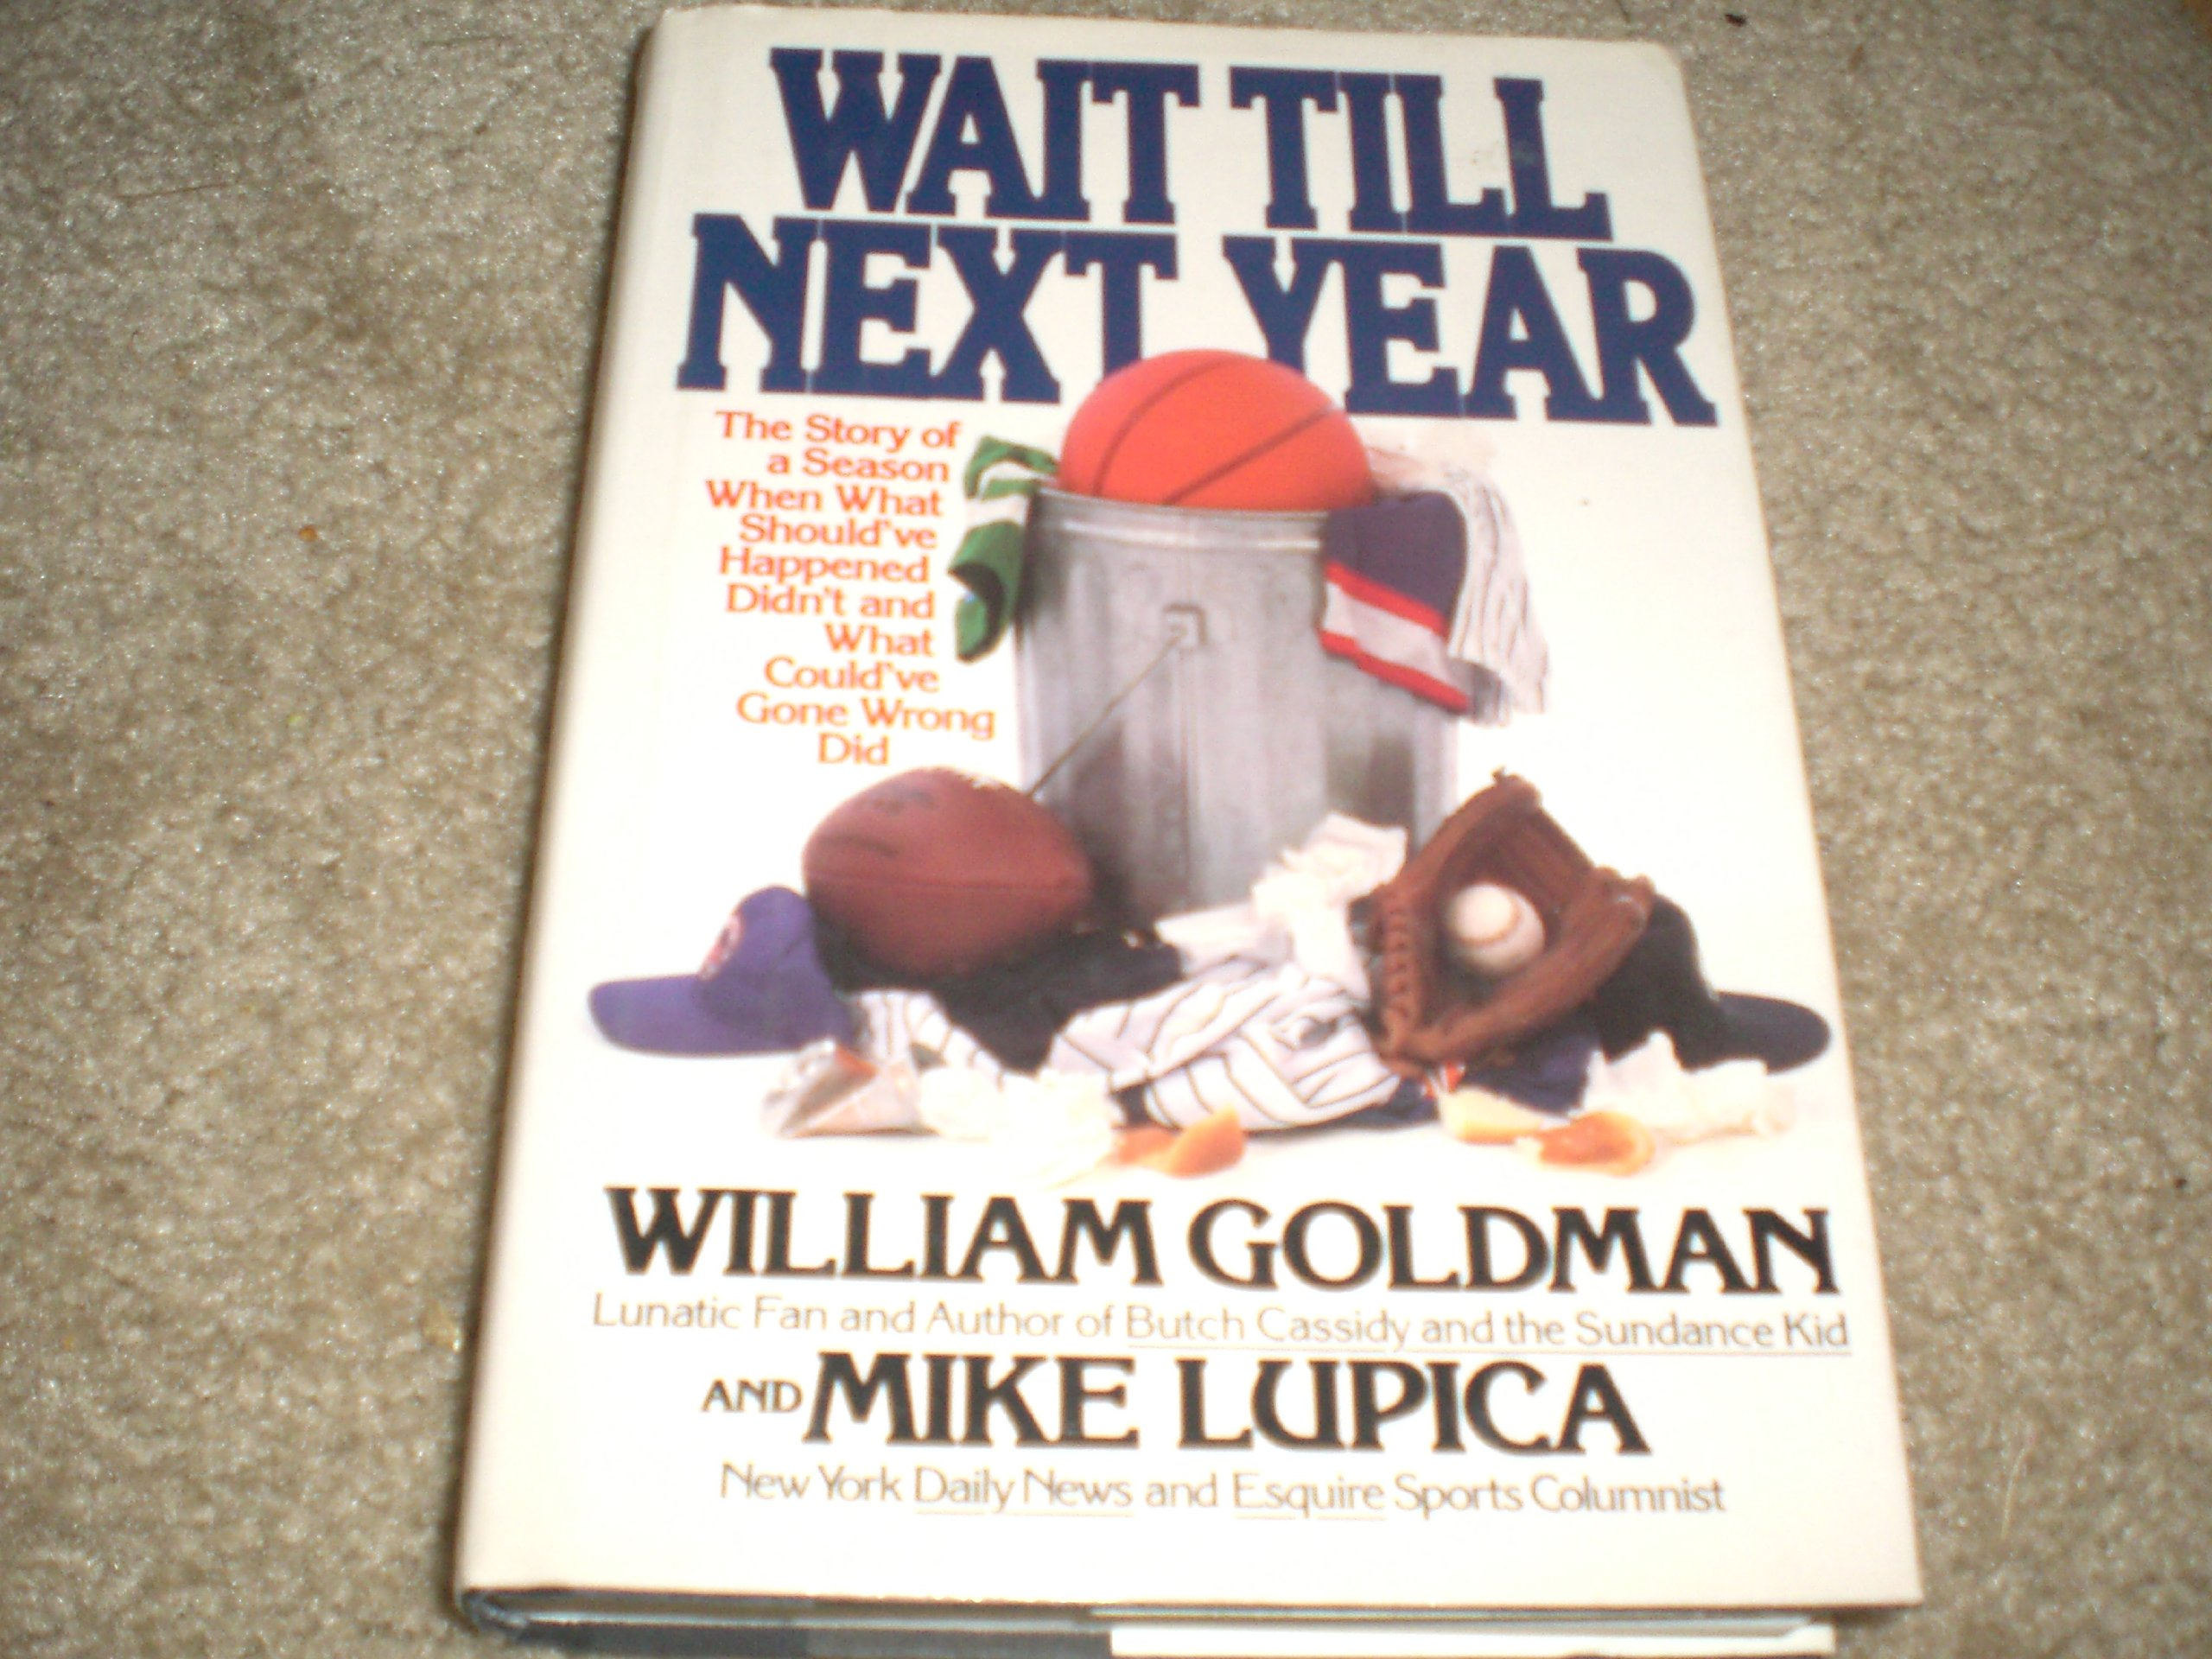 Story Of A Season When What Should've Happened Didn't, And What  Could've Gone Wrong Did: William Goldman, Mike Lupica: 9780553053197:  Amazon: Books